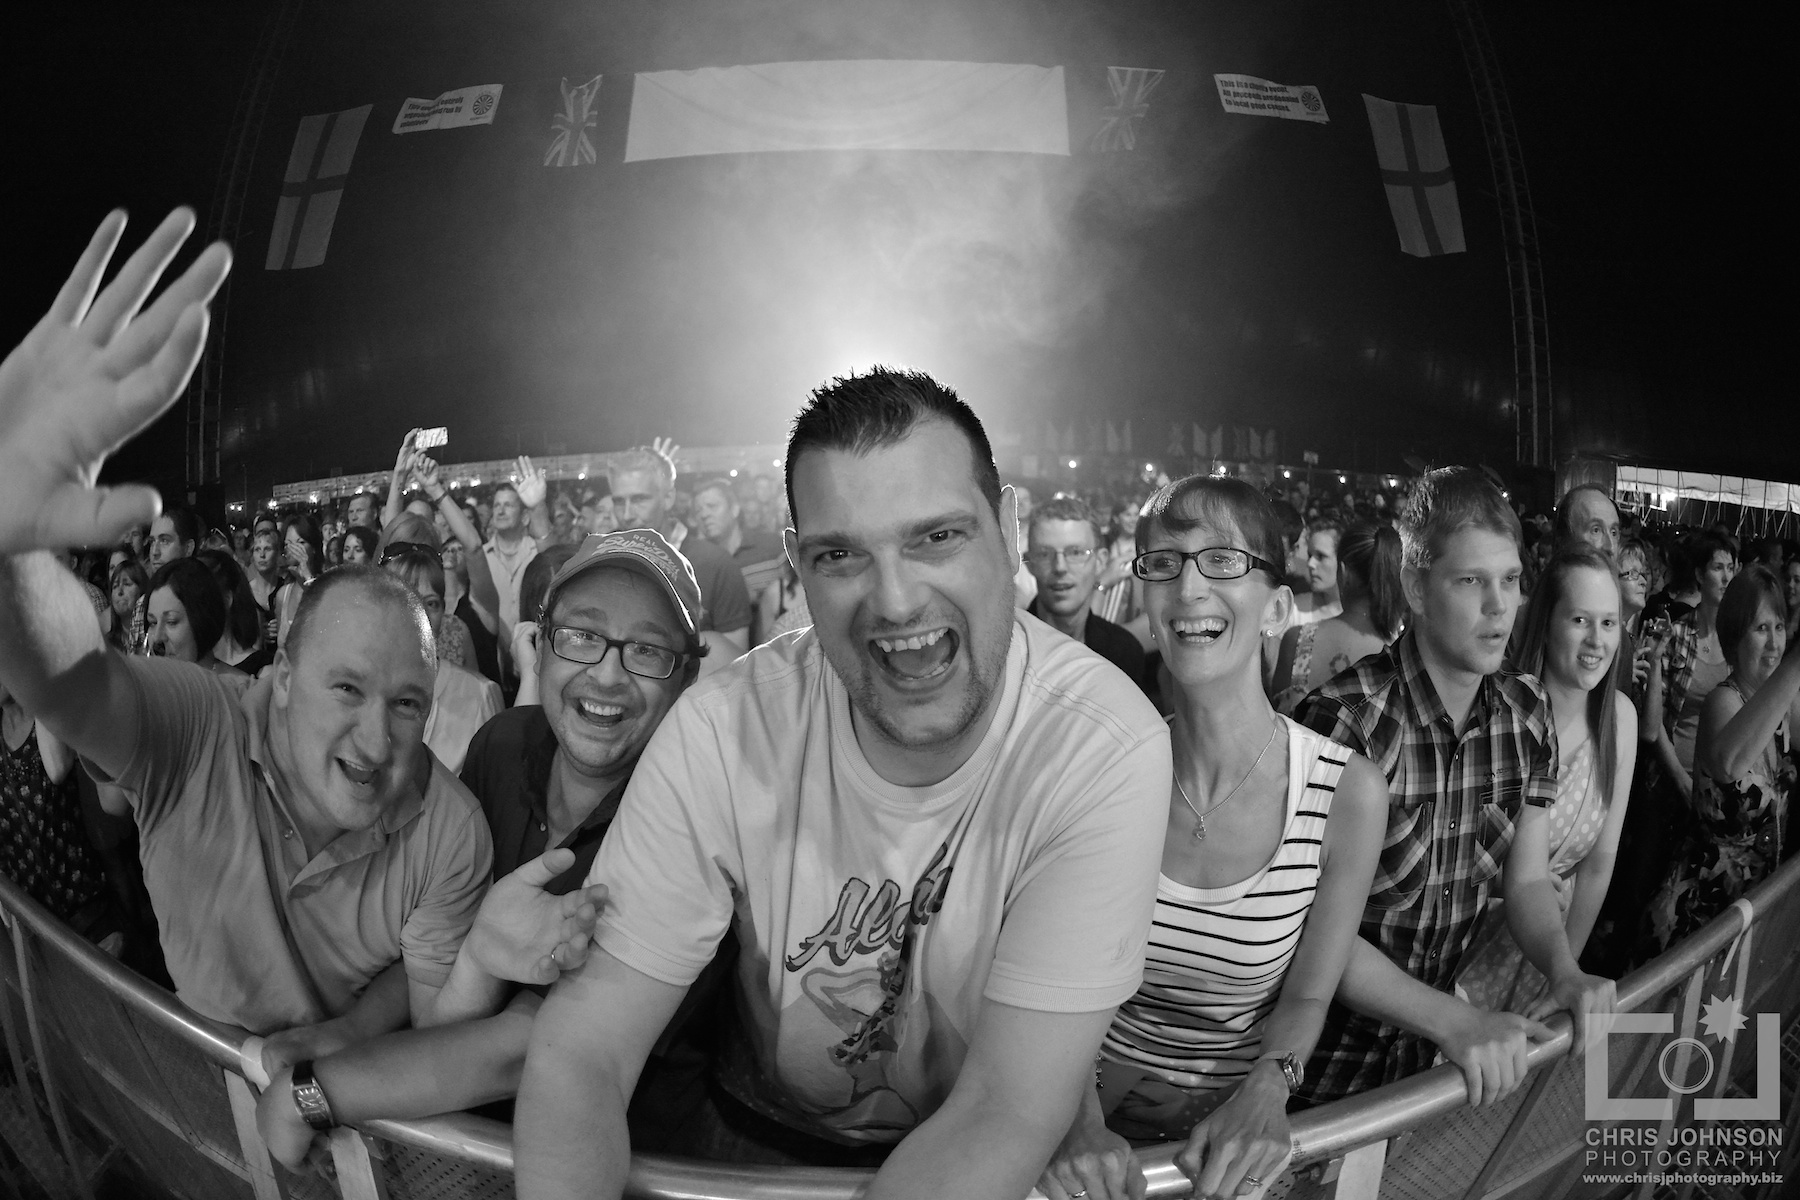 Black and white shot of the HBMF crowd from the stage perspective